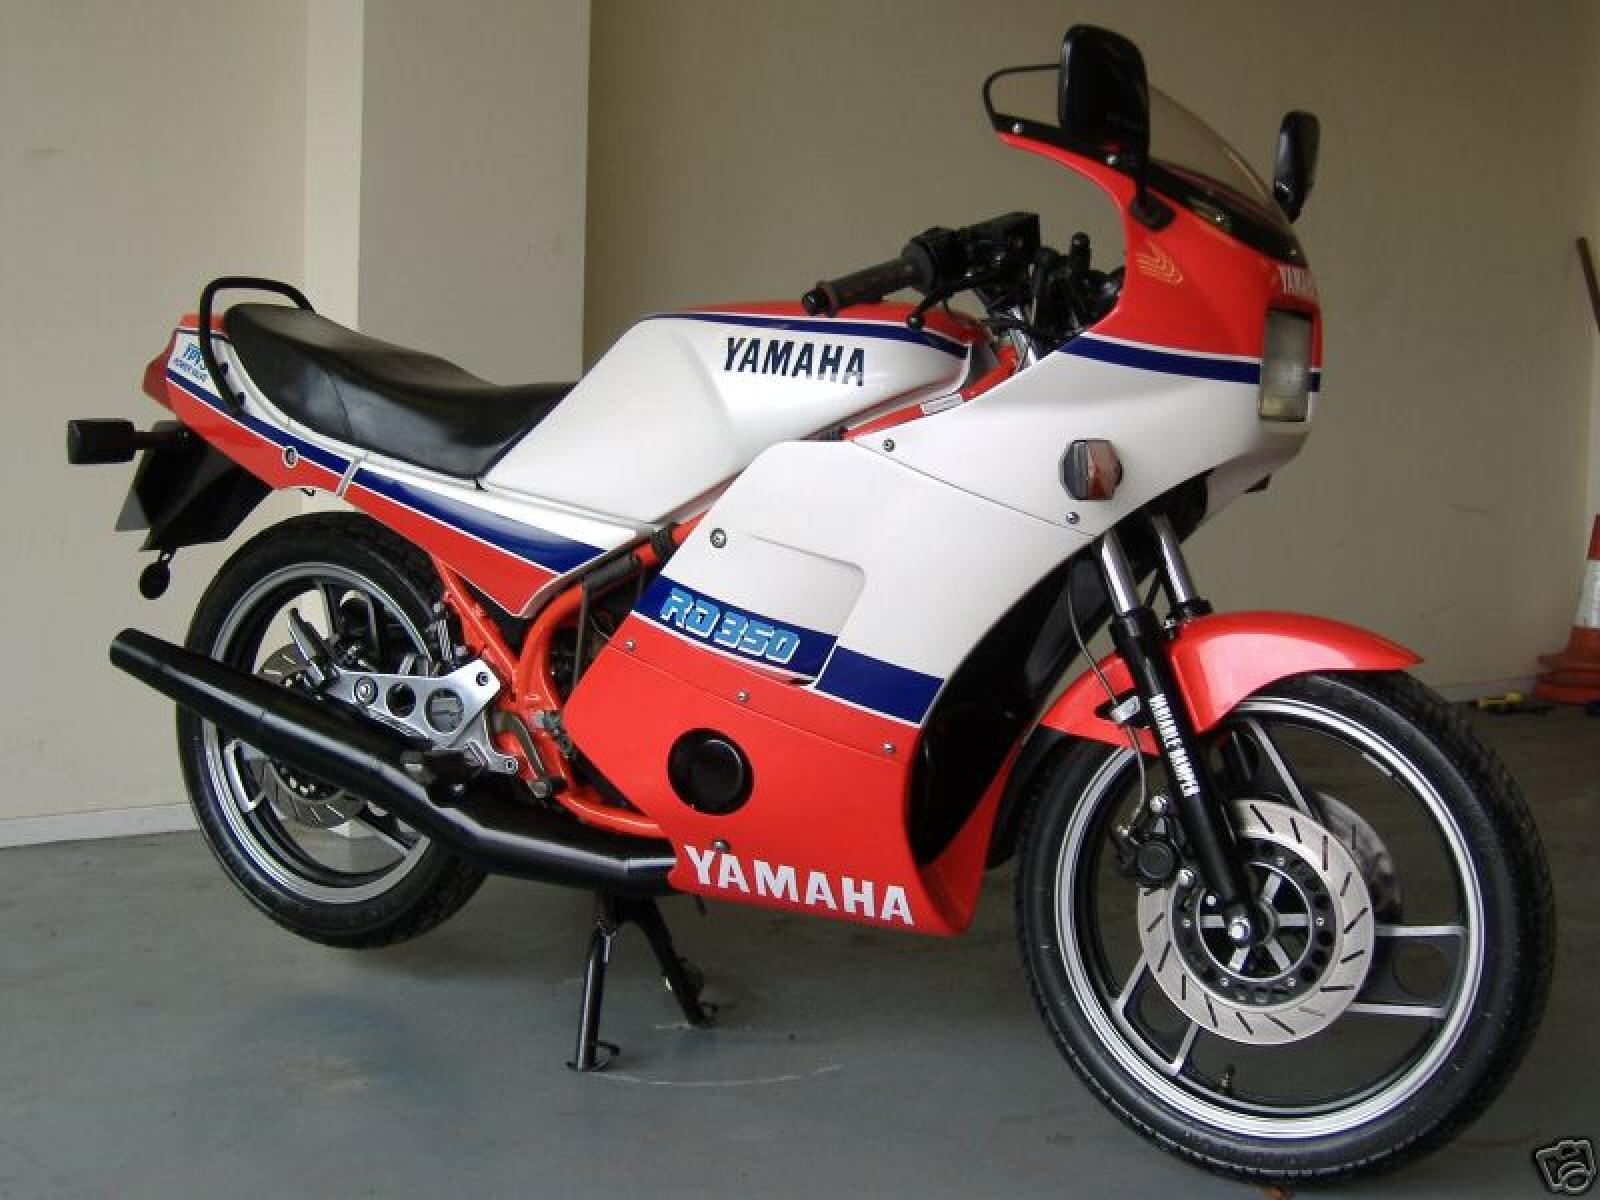 1990 Yamaha RD 350 N (reduced effect) #1